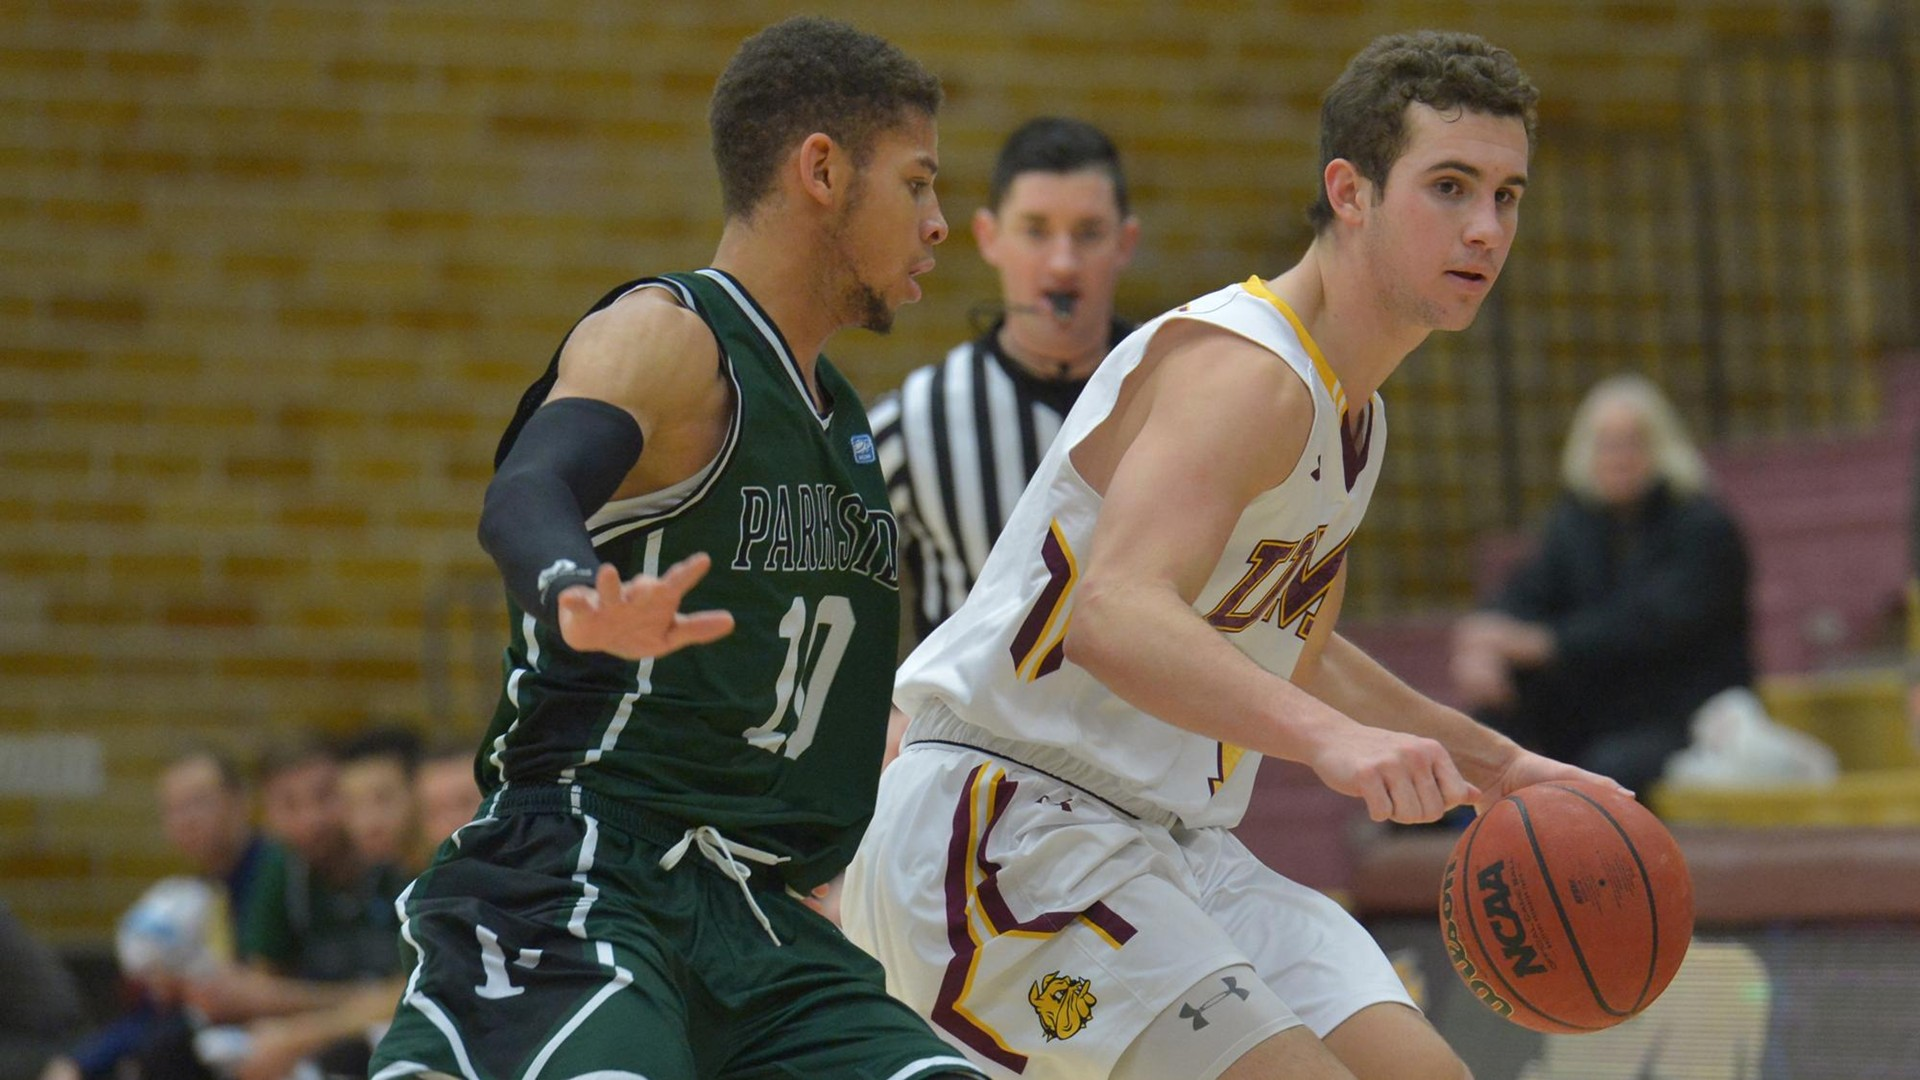 DULUTH, MN - Dec. 19, 2016. Then-freshman guard Logan Rohrscheib finished a perfect 4-for-4 at the free-throw line while racking up four assists to compliment seven points against the University of Wisconsin-Parkside Rangers. Photo credit: Brett Groehler